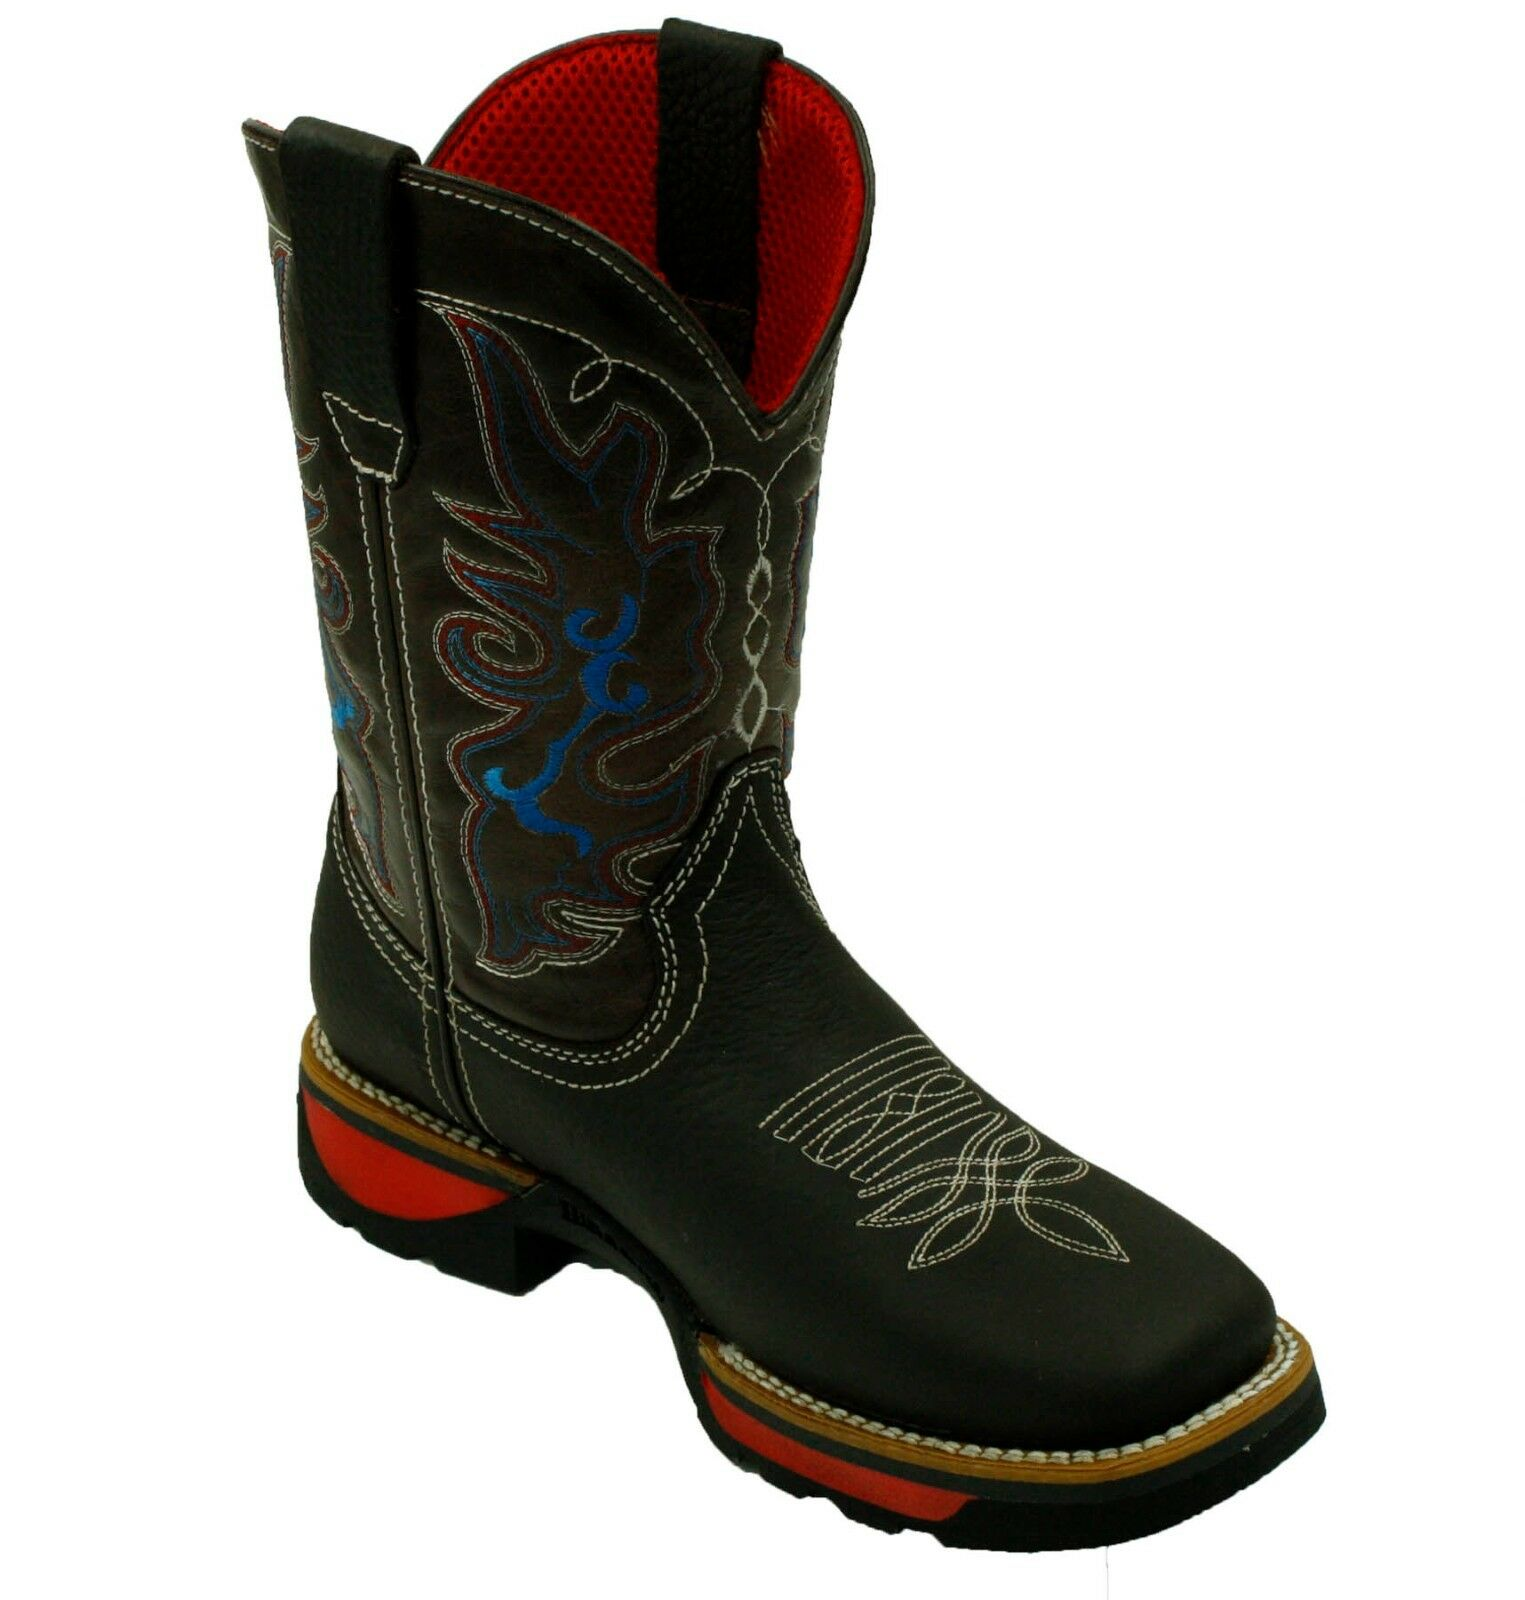 MEN'S RODEO COWBOY BOOTS GENUINE LEATHER WESTERN SQUARE TOE BOOTS LIGHT WEIGHT